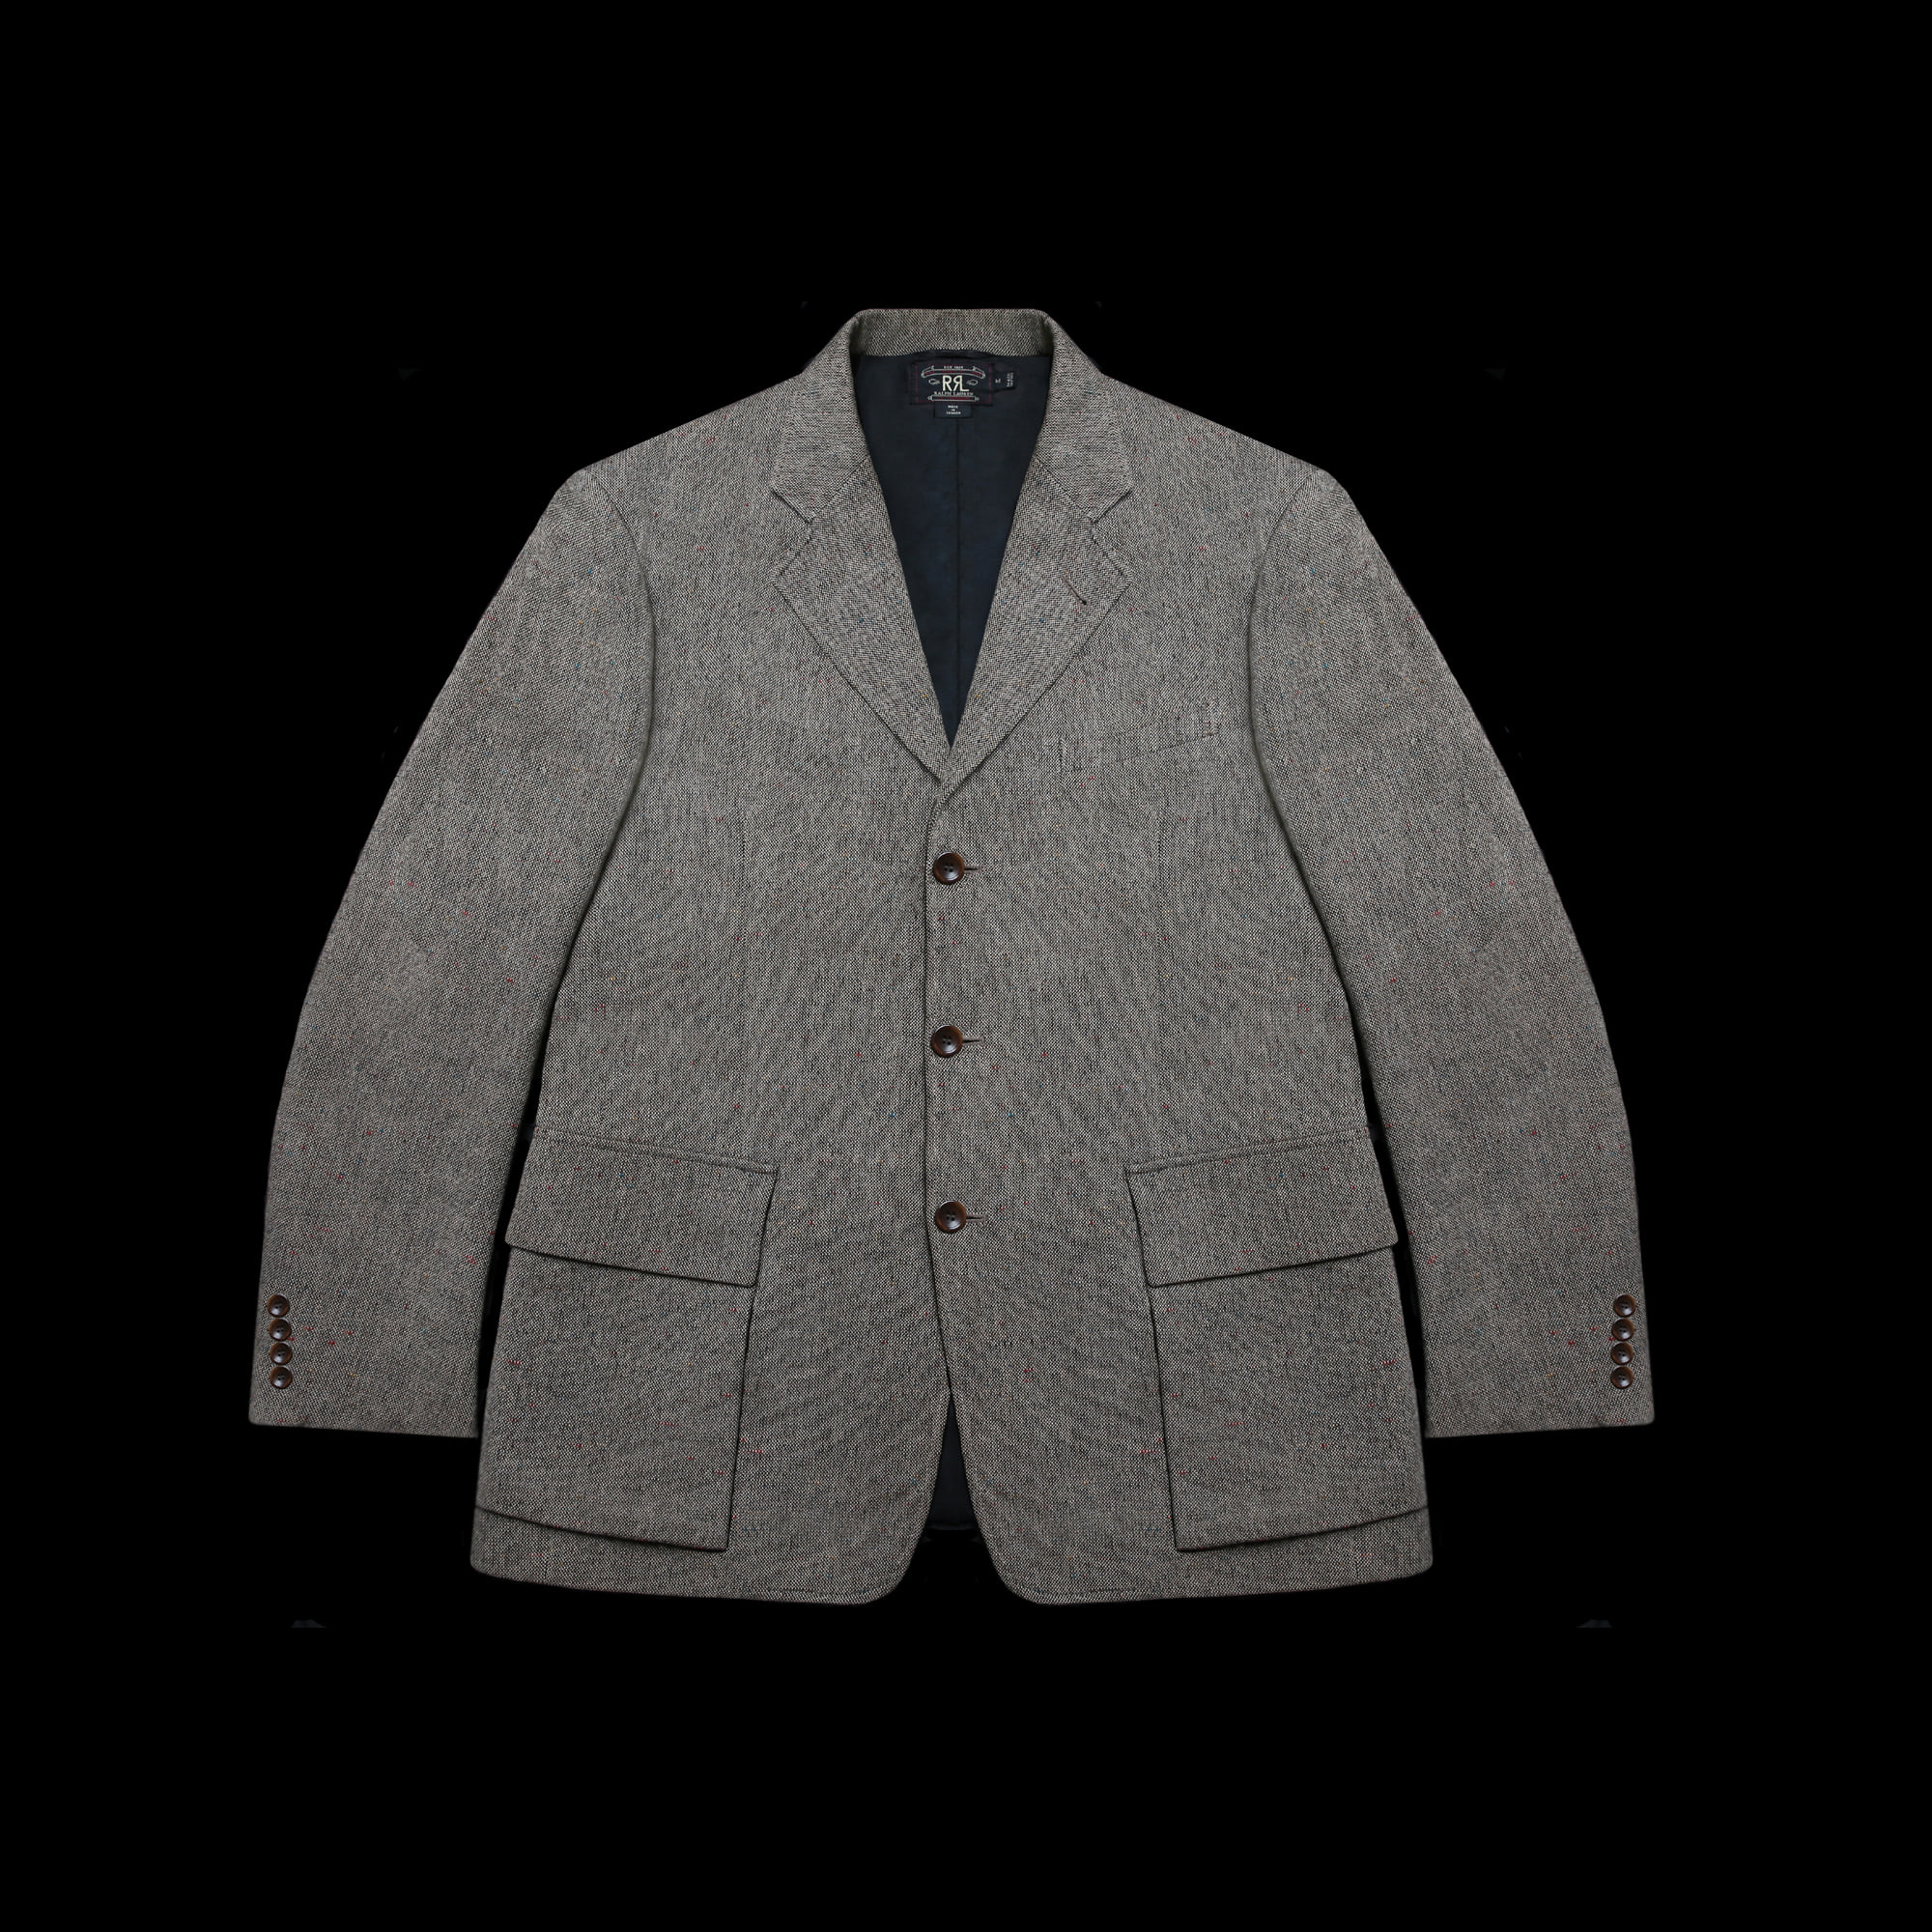 RRLDONEGAL TWEEDSPORT JACKET